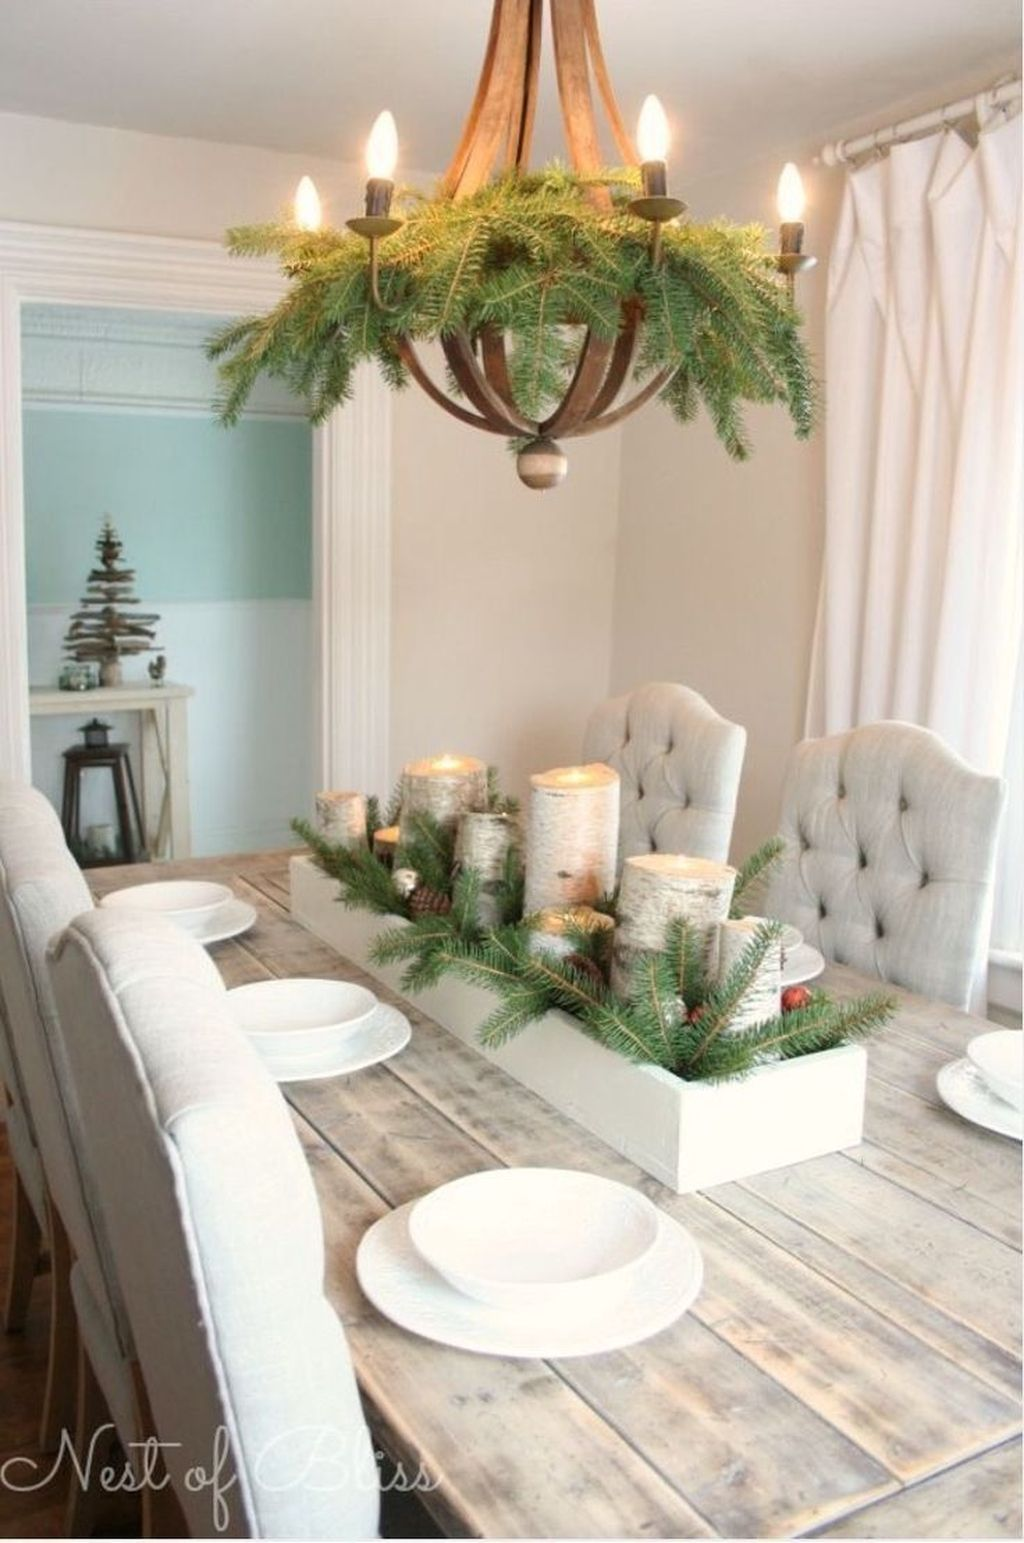 40 Best Christmas Dining Room Decorating Ideas In 2020 Dining Table Centerpiece Dining Room Centerpiece Christmas Dining Table Decor